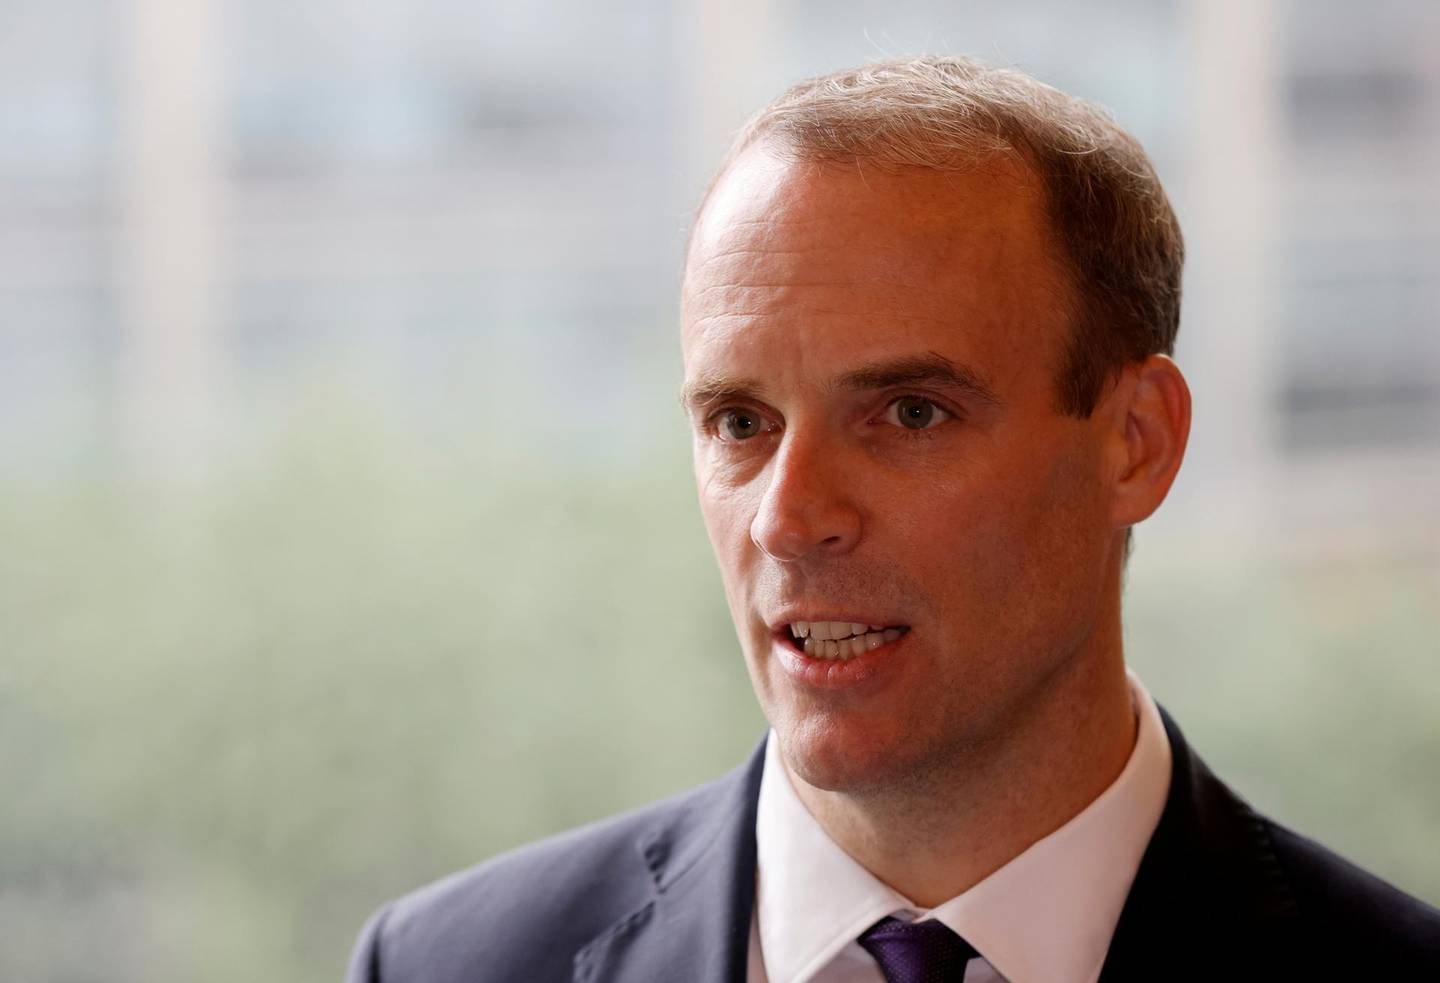 FILE PHOTO: Britain's Foreign Secretary Dominic Raab speaks during an interview with Reuters in Seoul, South Korea, September 29, 2020.   REUTERS/Kim Hong-Ji/File Photo